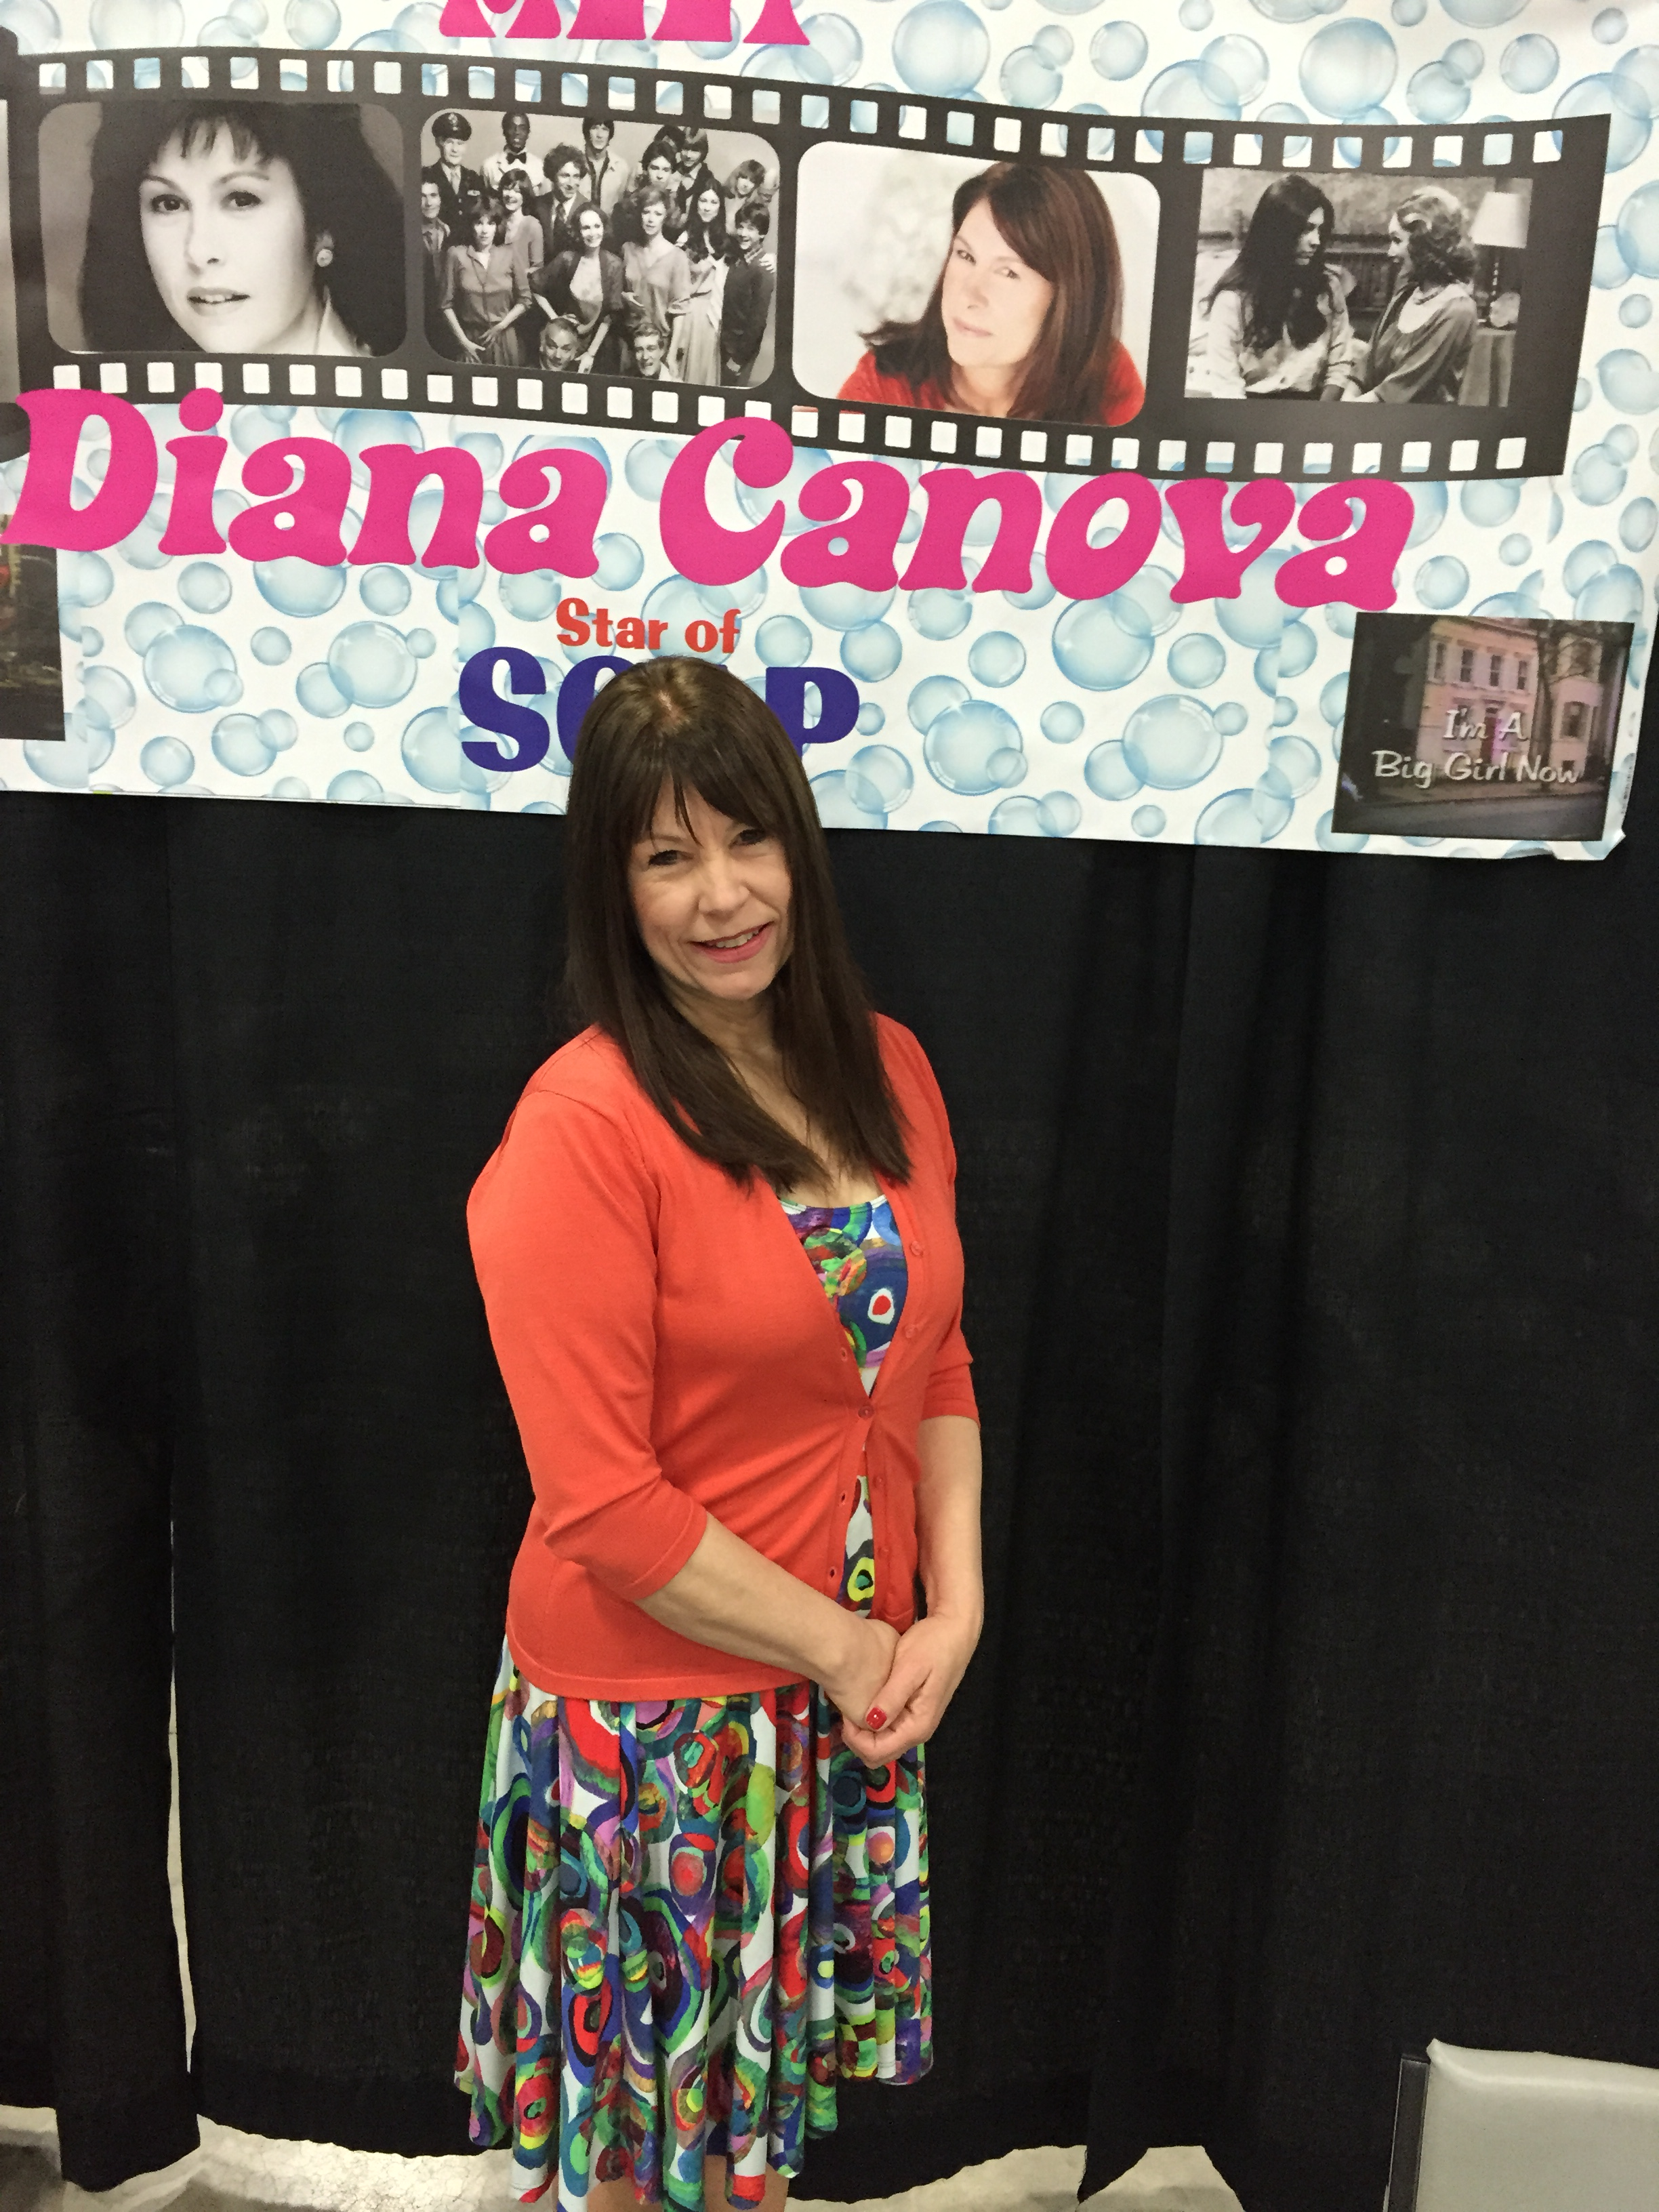 Diana Canova Jason Harris Promotions Select from premium diana canova of the highest quality. diana canova jason harris promotions